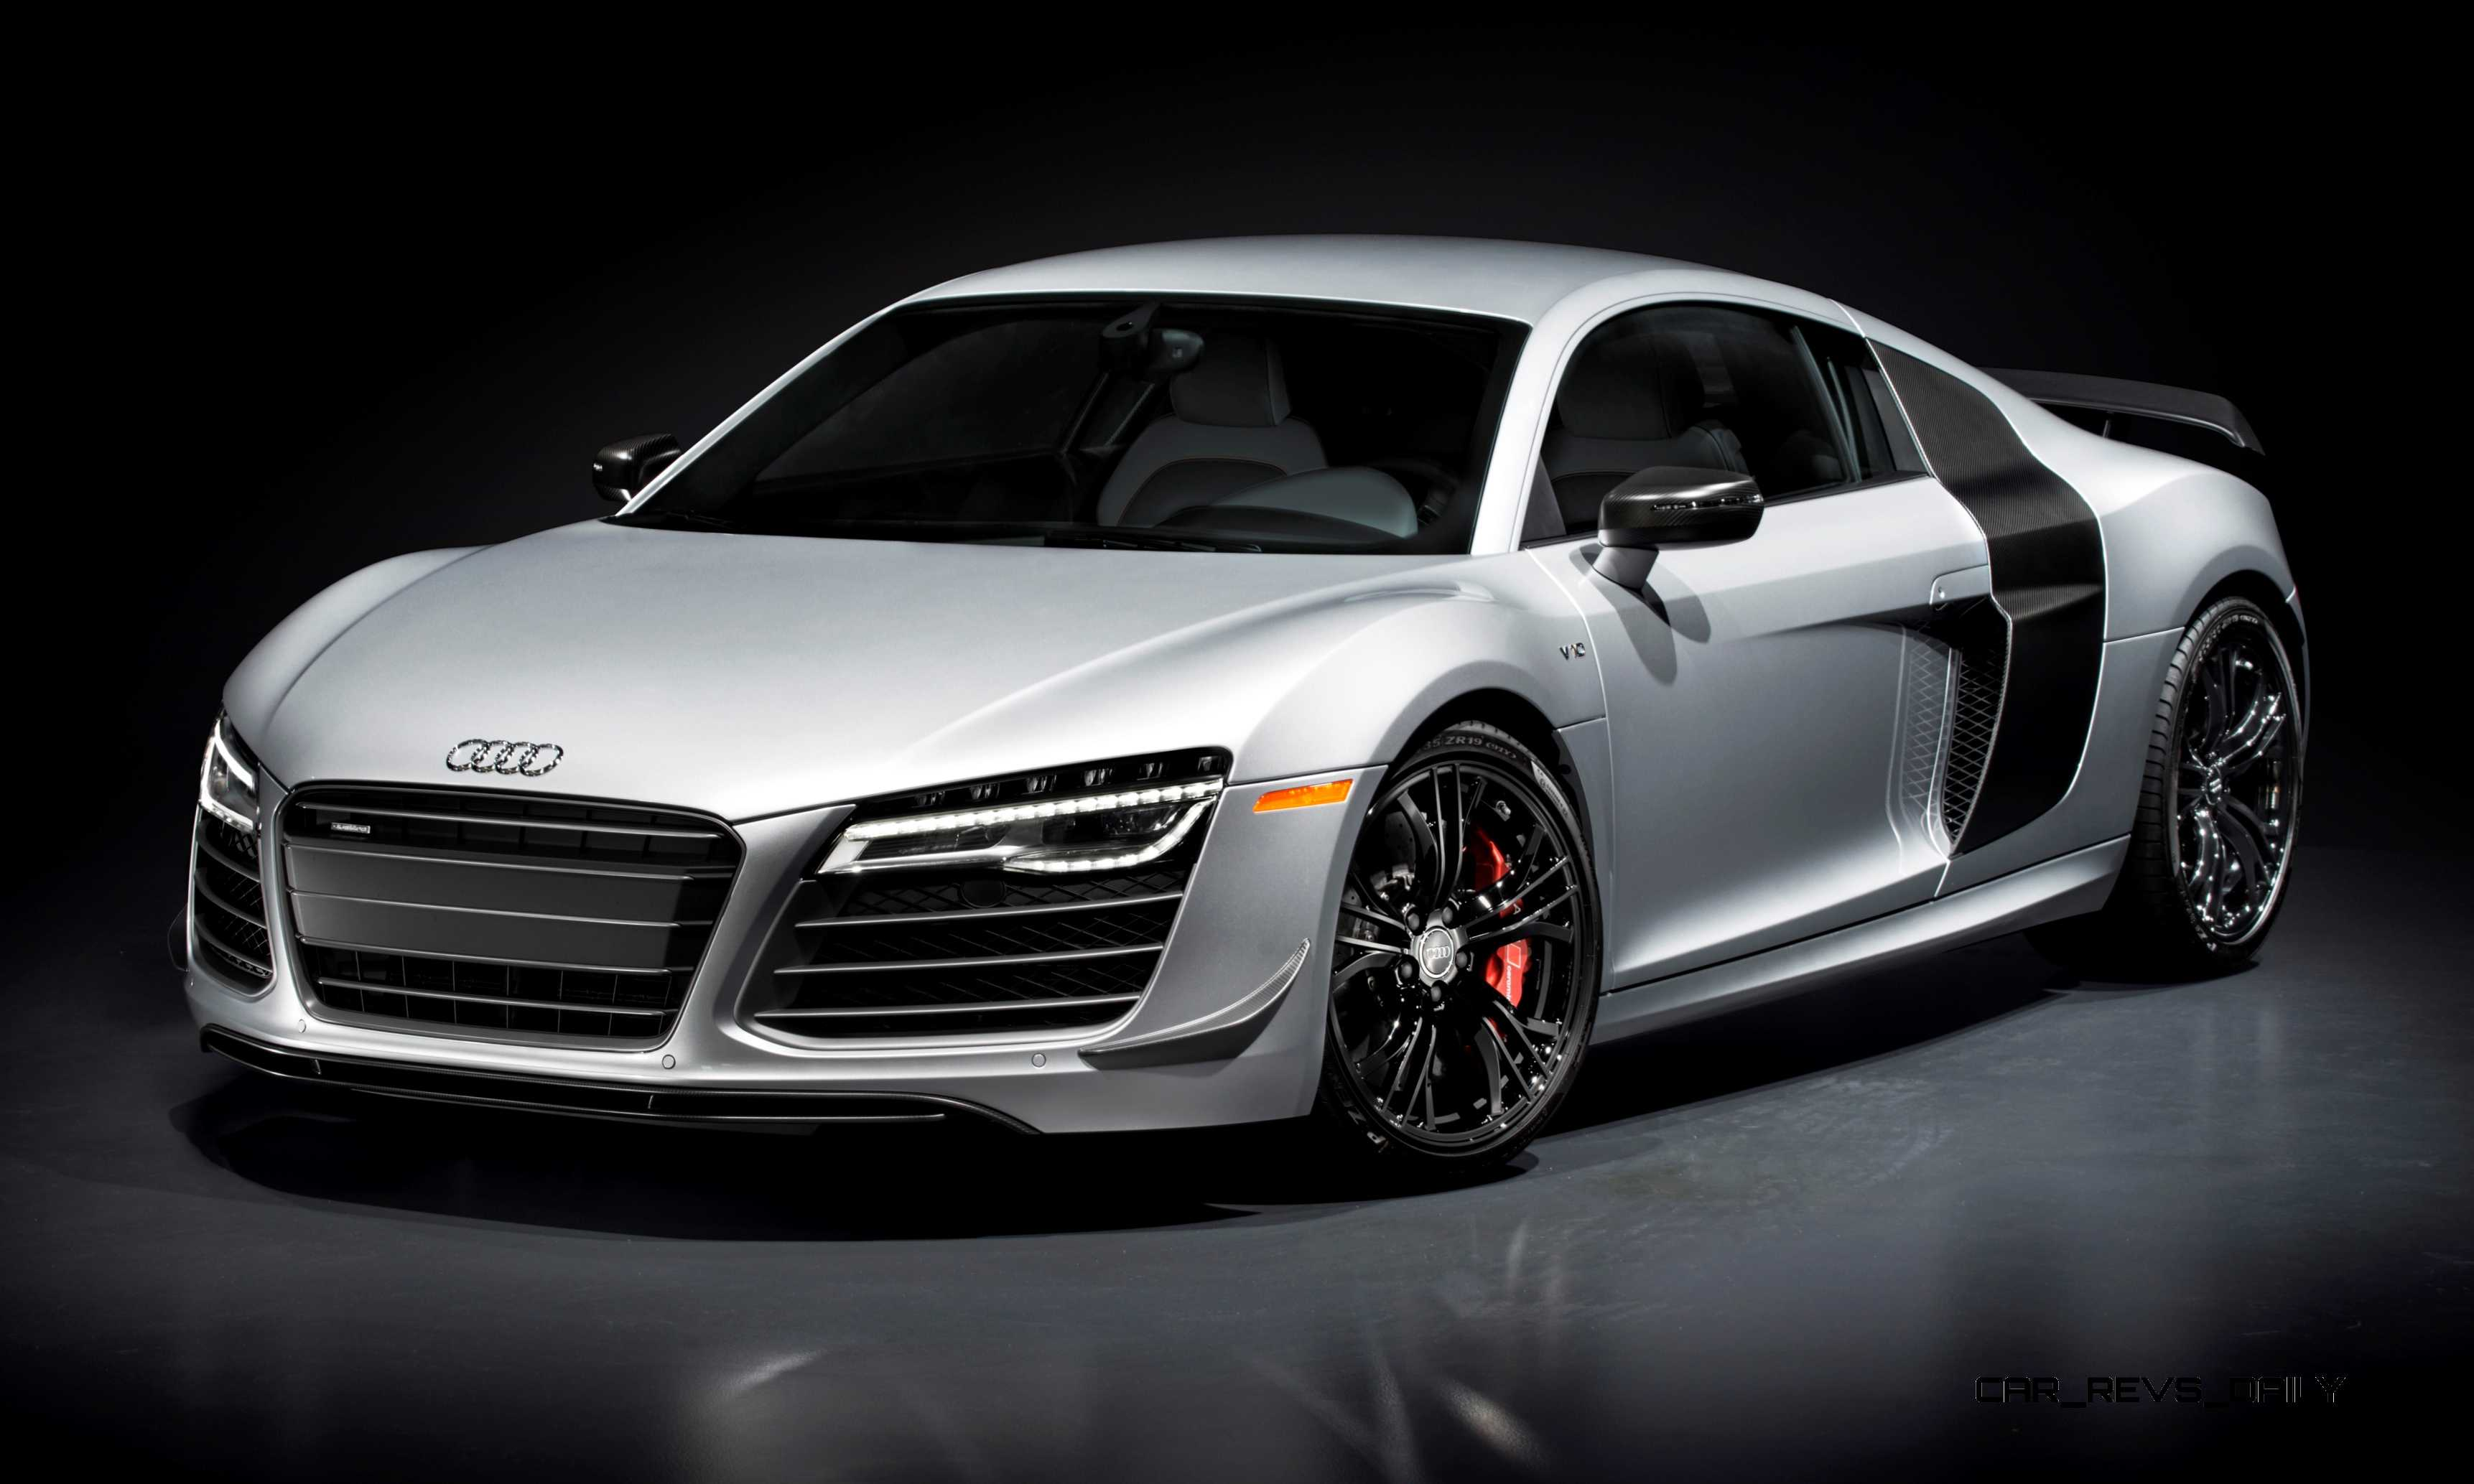 199mph 2015 audi r8 competition edition revealed ahead of la show. Black Bedroom Furniture Sets. Home Design Ideas